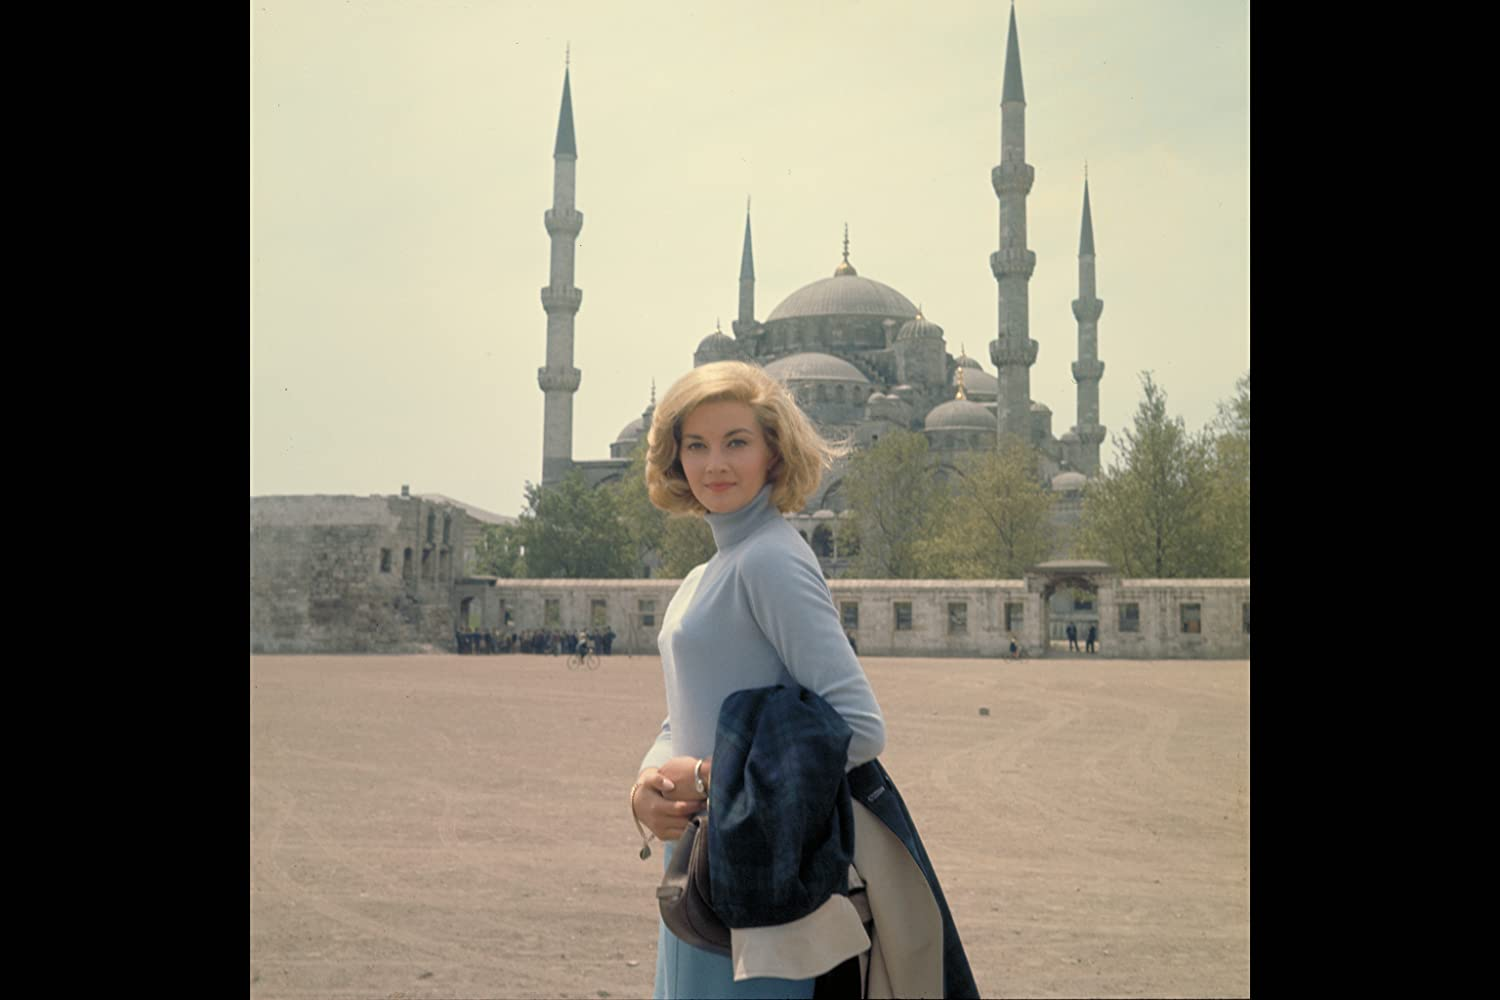 Daniela Bianchi in From Russia with Love (1963)